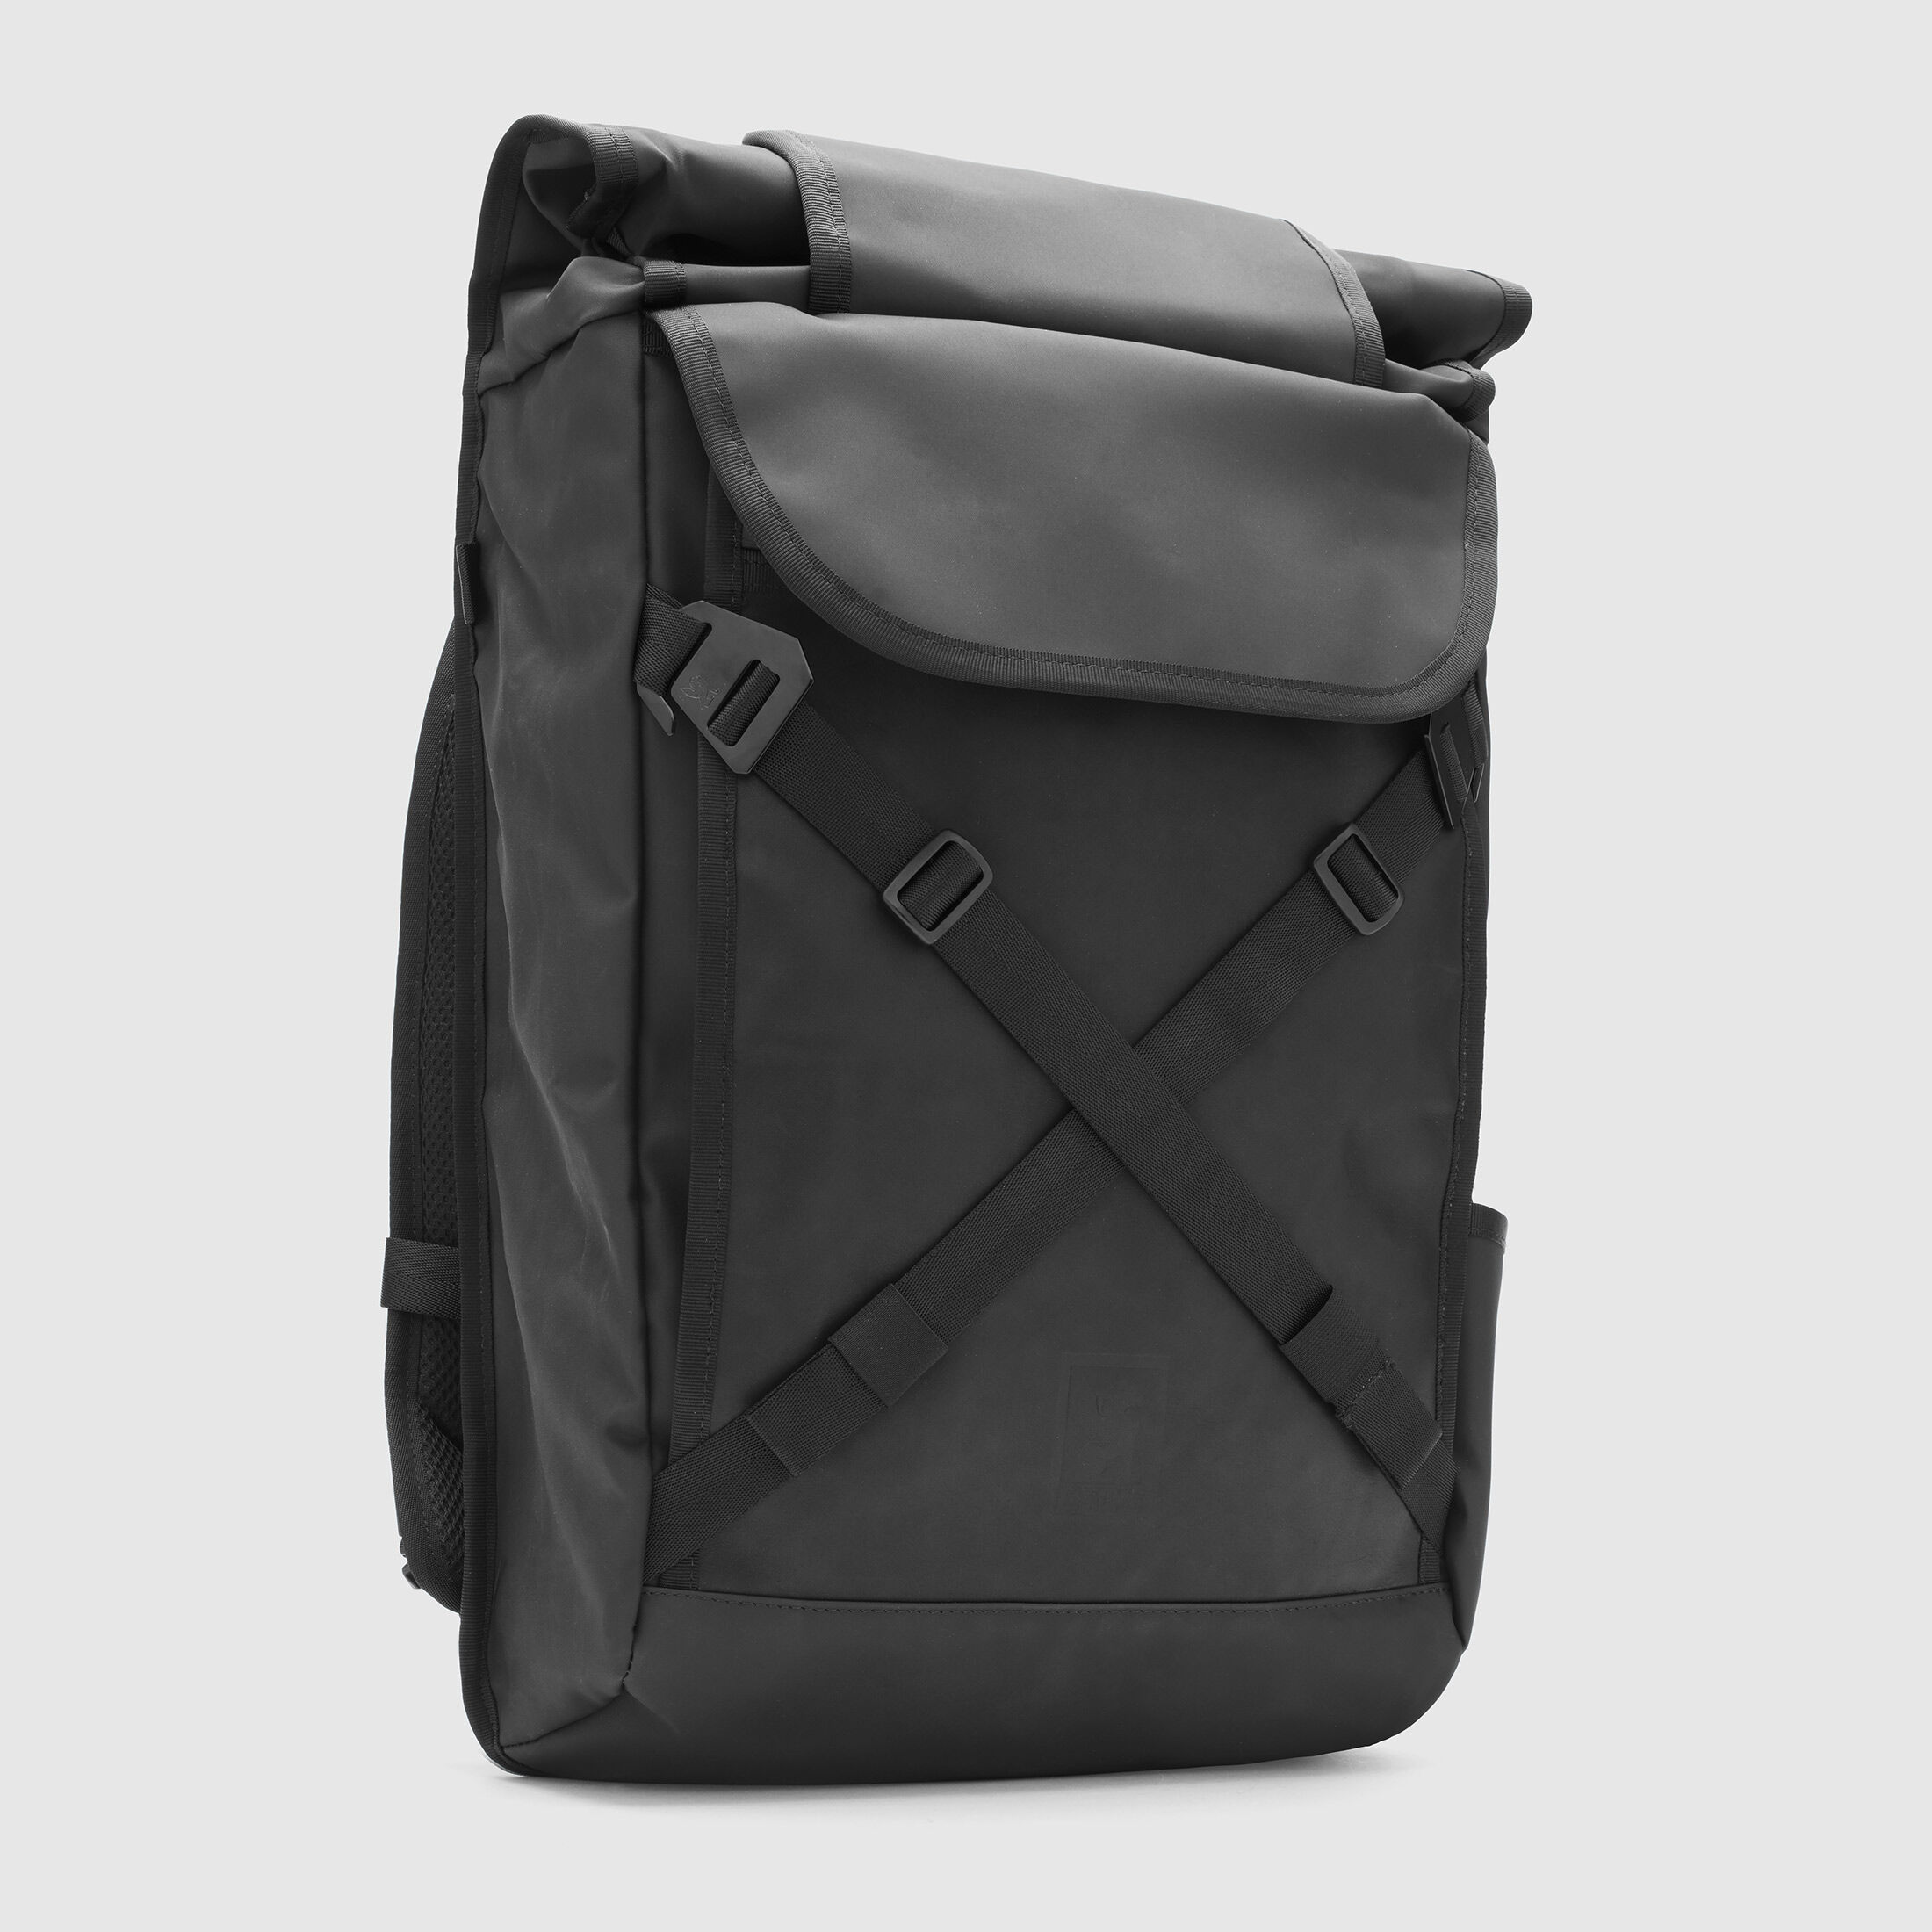 dc3b7c3600b4 What backpack are you rocking? – Designer News